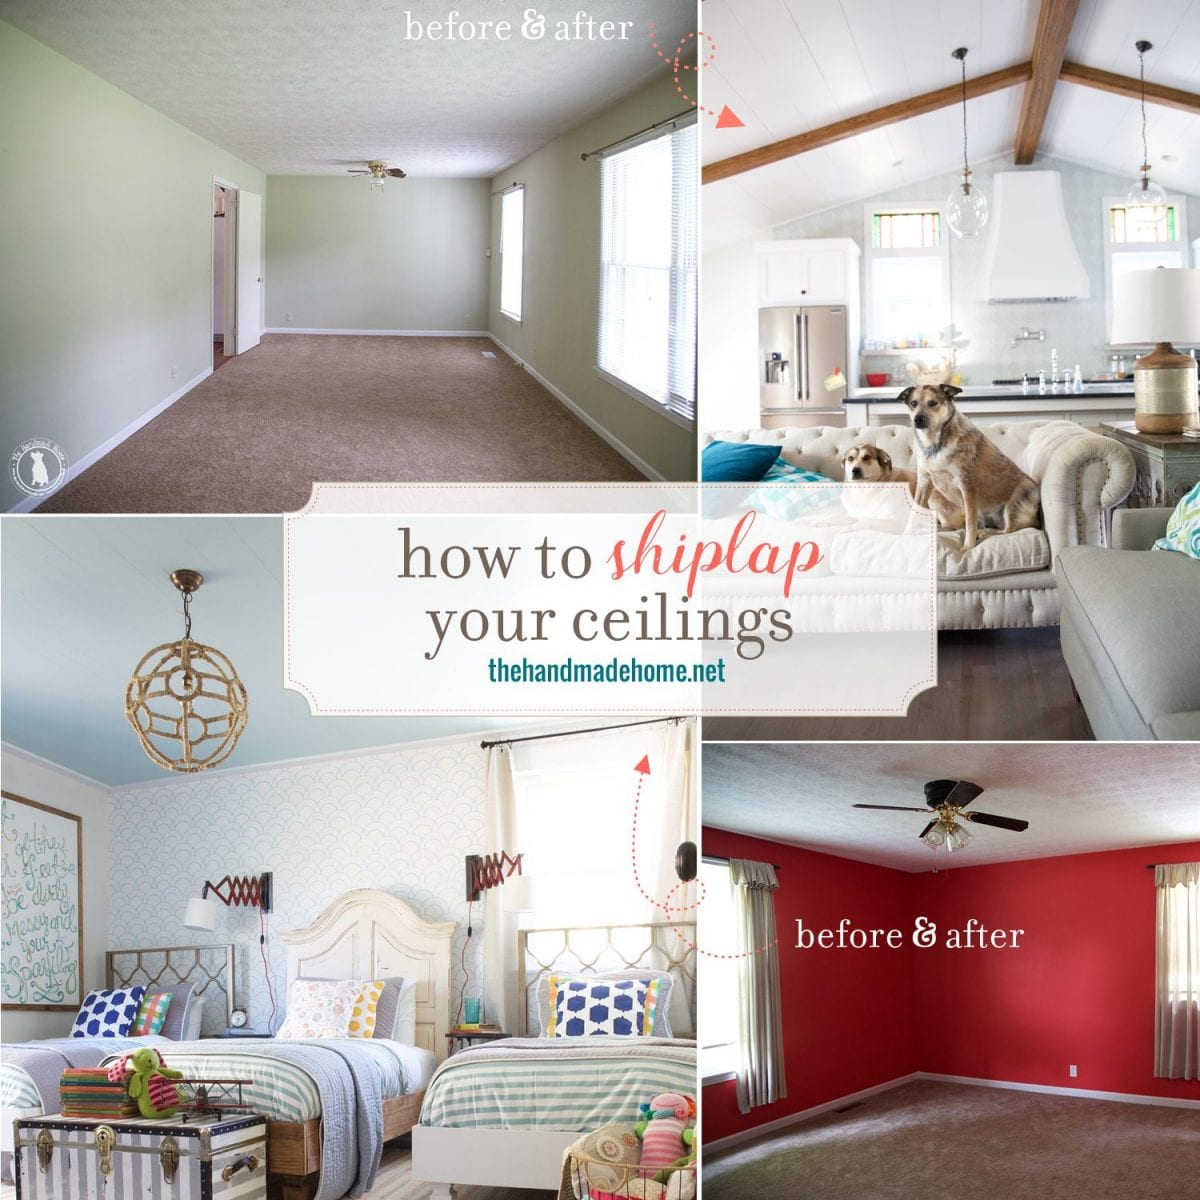 how_to_shiplap_your_ceilings22